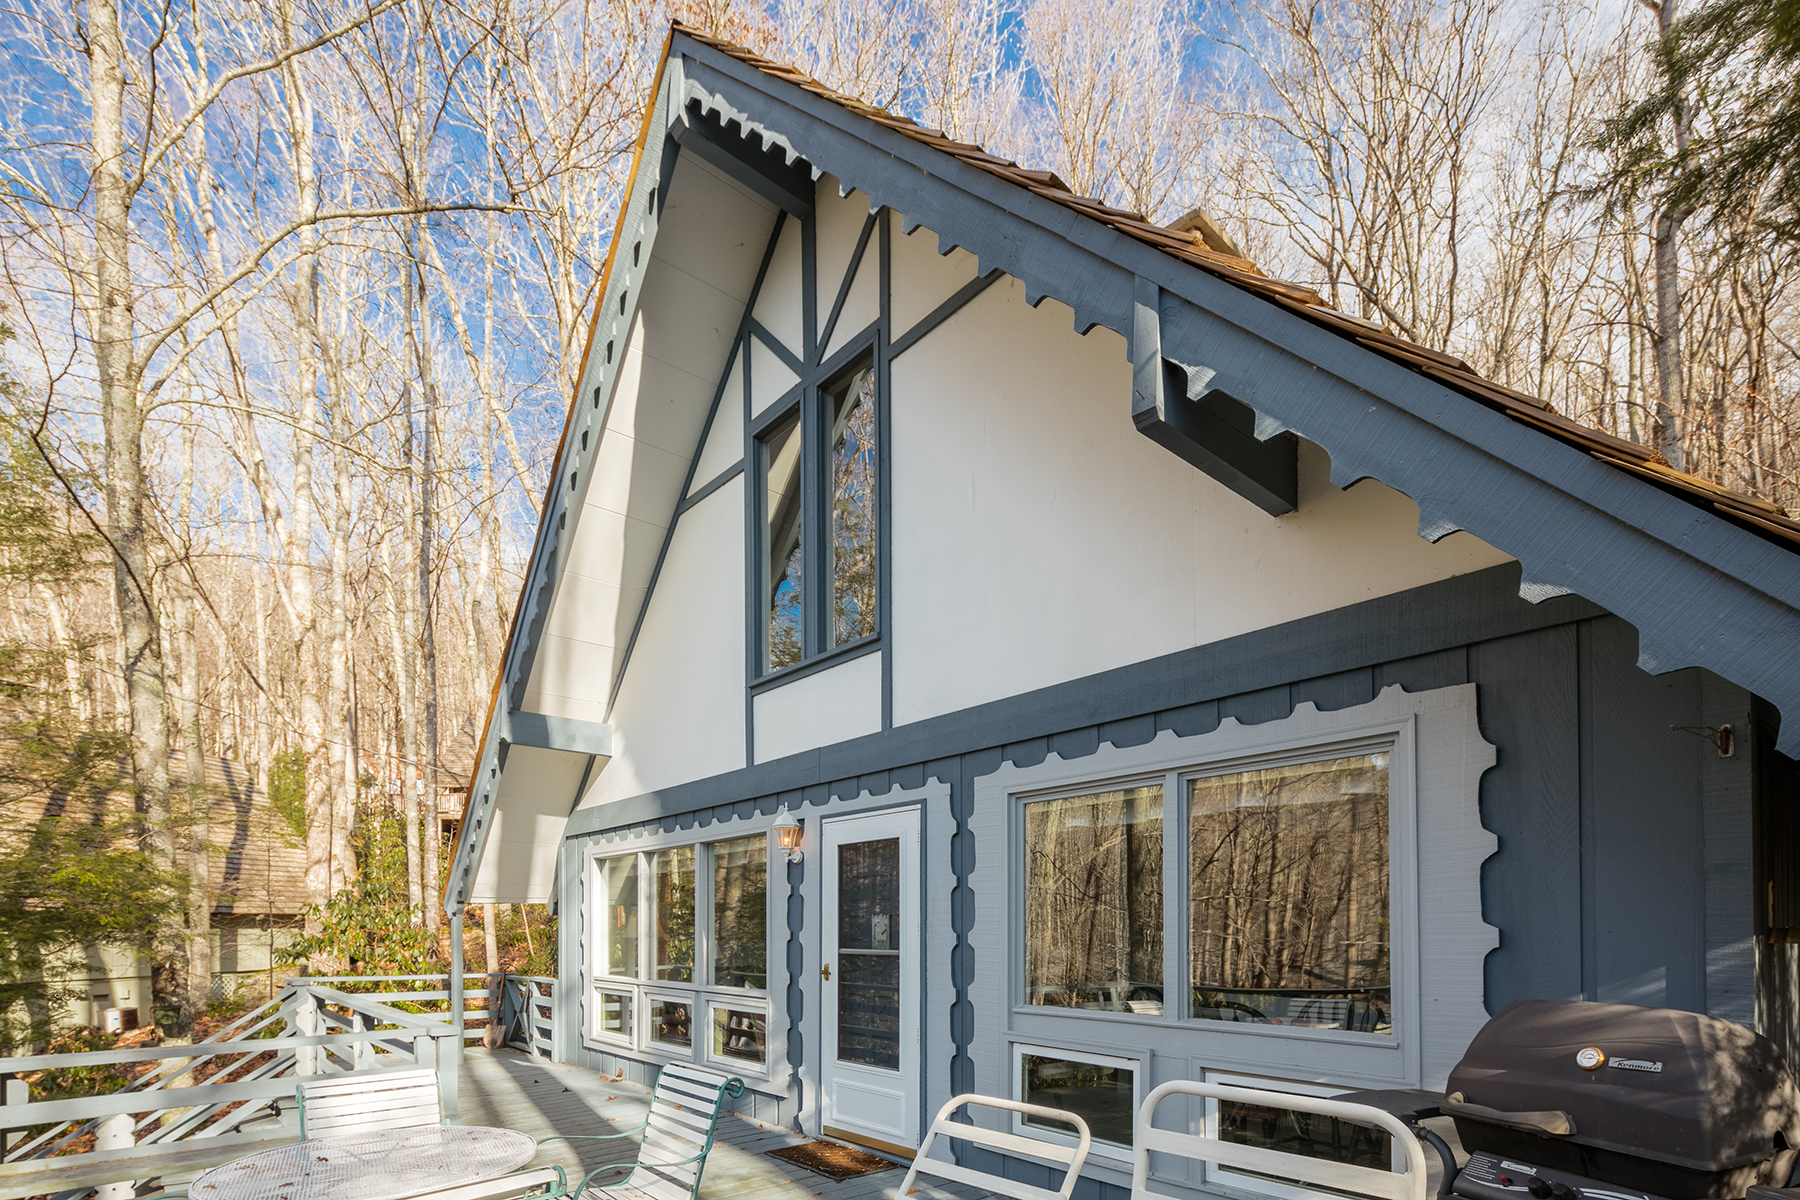 Single Family Home for Sale at Boone - Hound Ears 119 Pecan 4-C Boone, North Carolina, 28607 United States